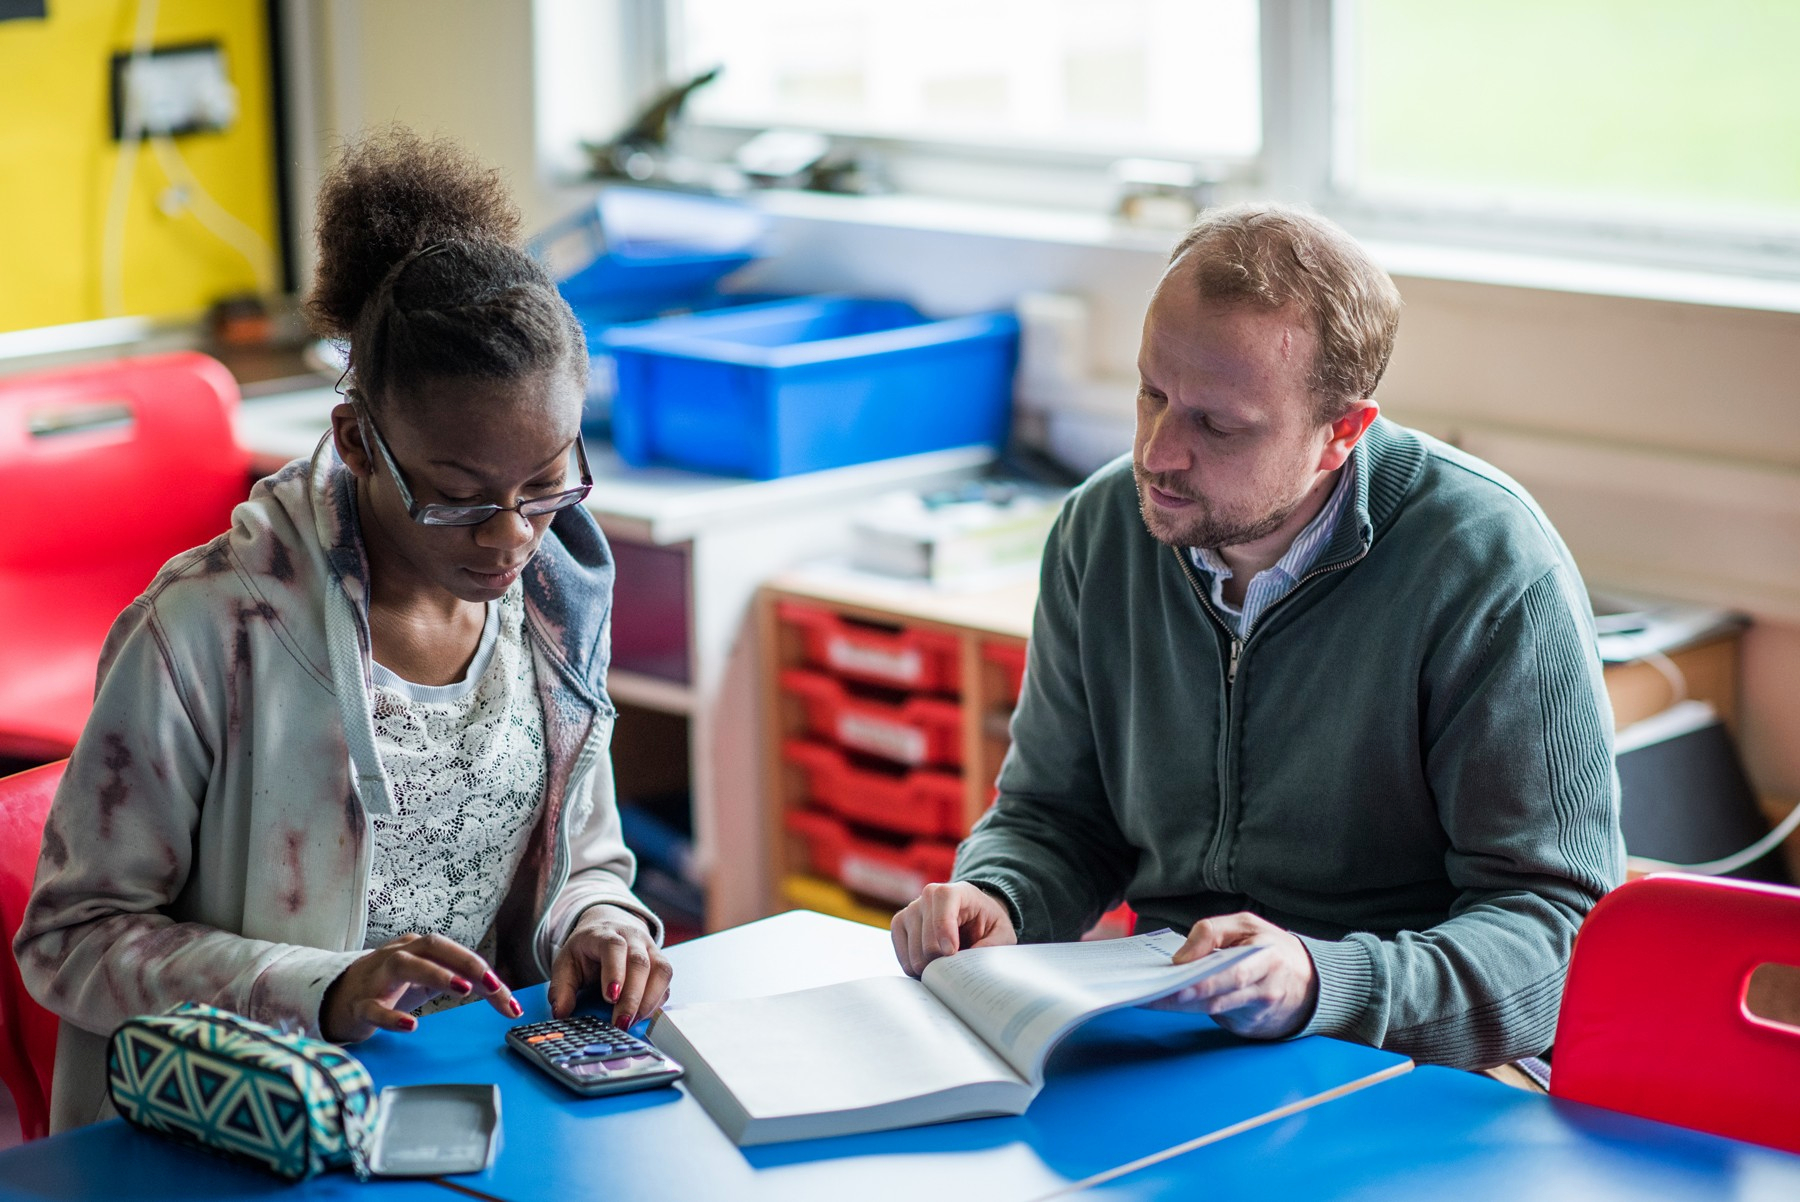 A tutor goes over some work with a learner